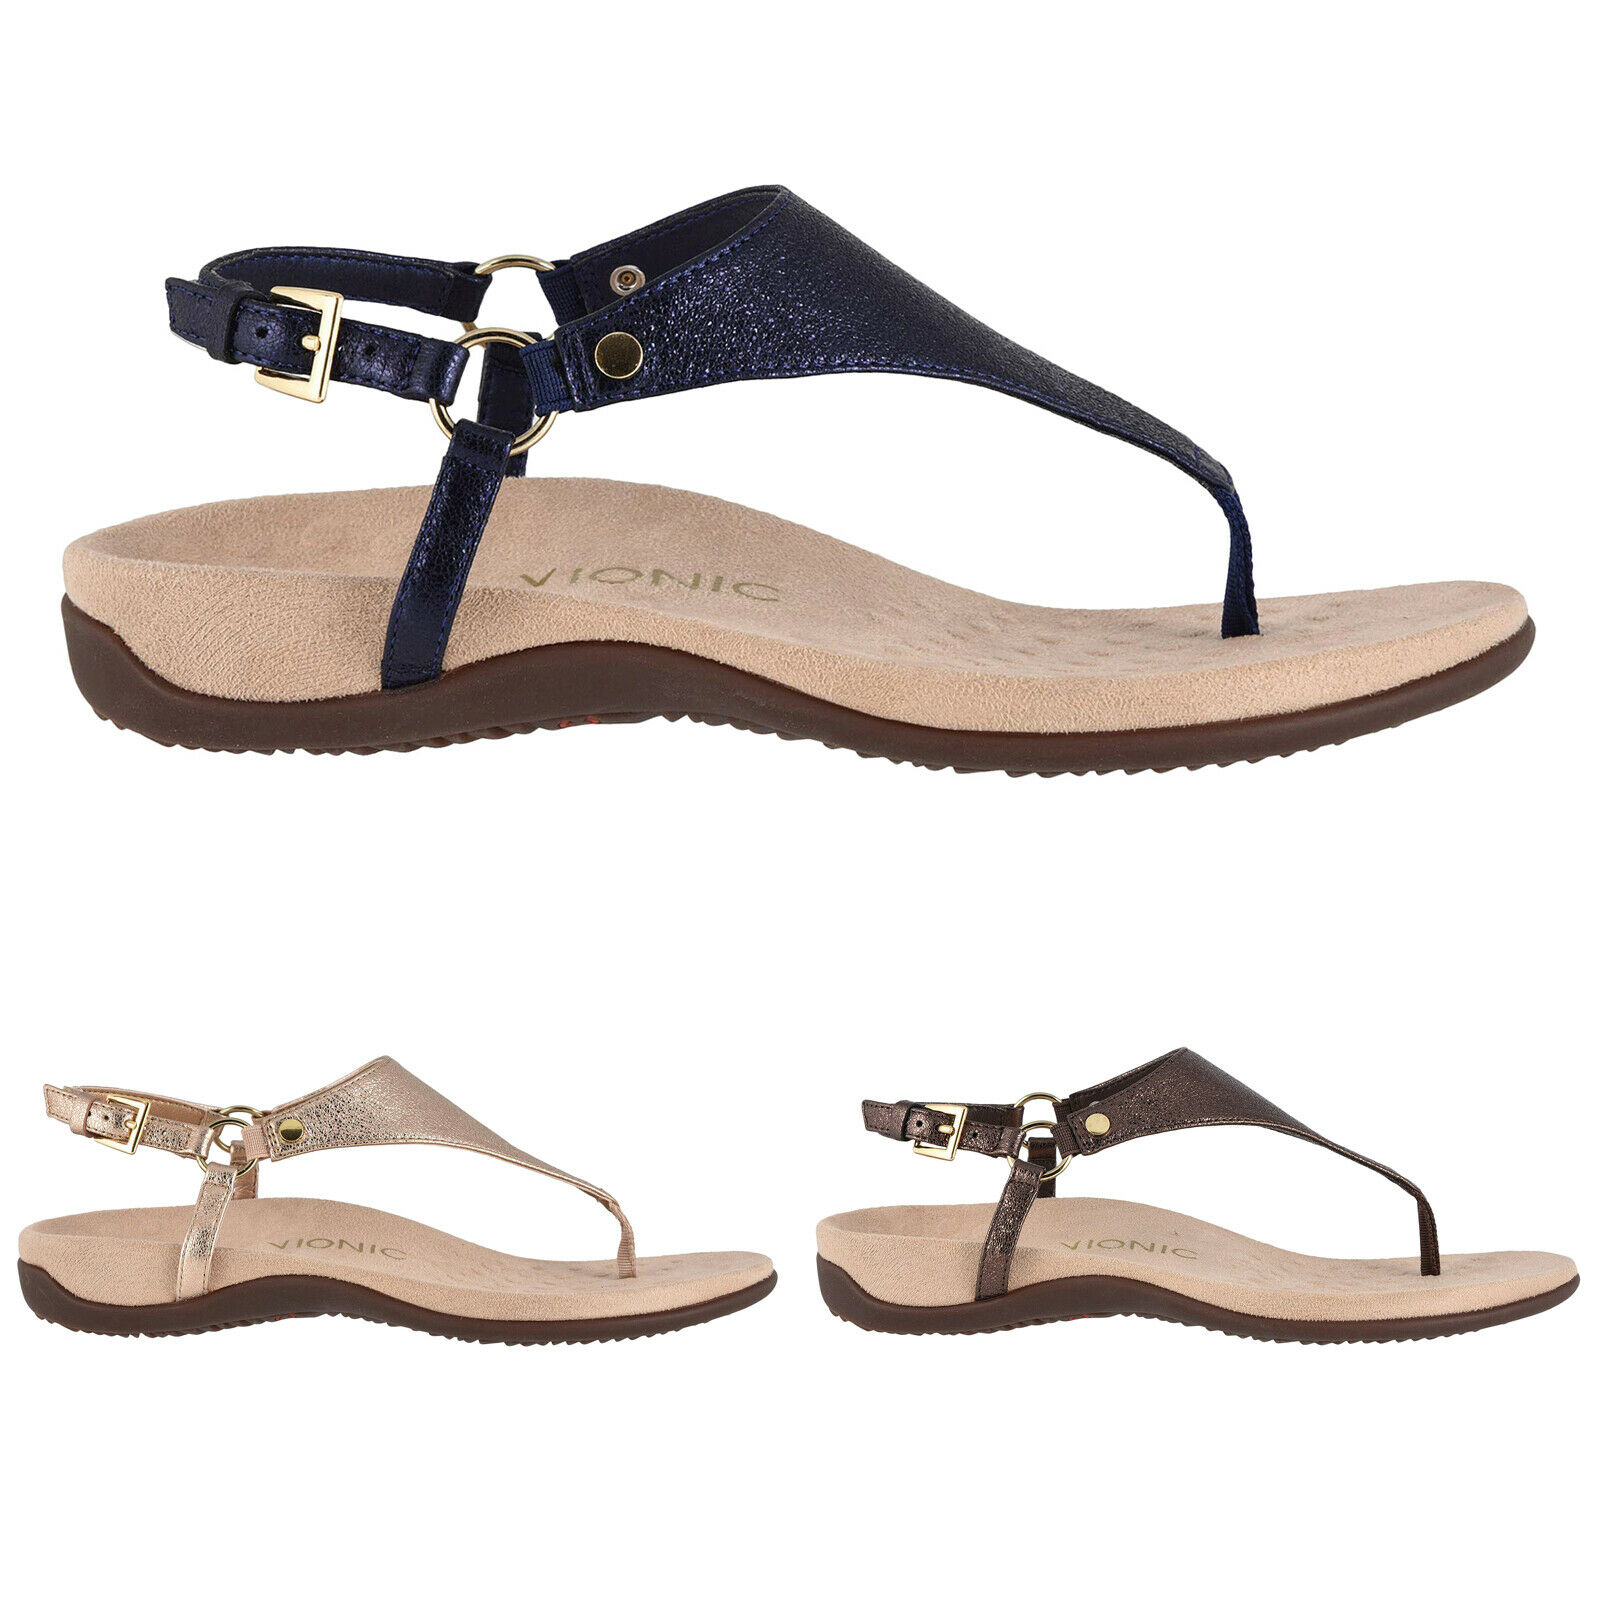 Vionic Rest Kirra  Leather Flat Summer Slingbacks mujer Sandals